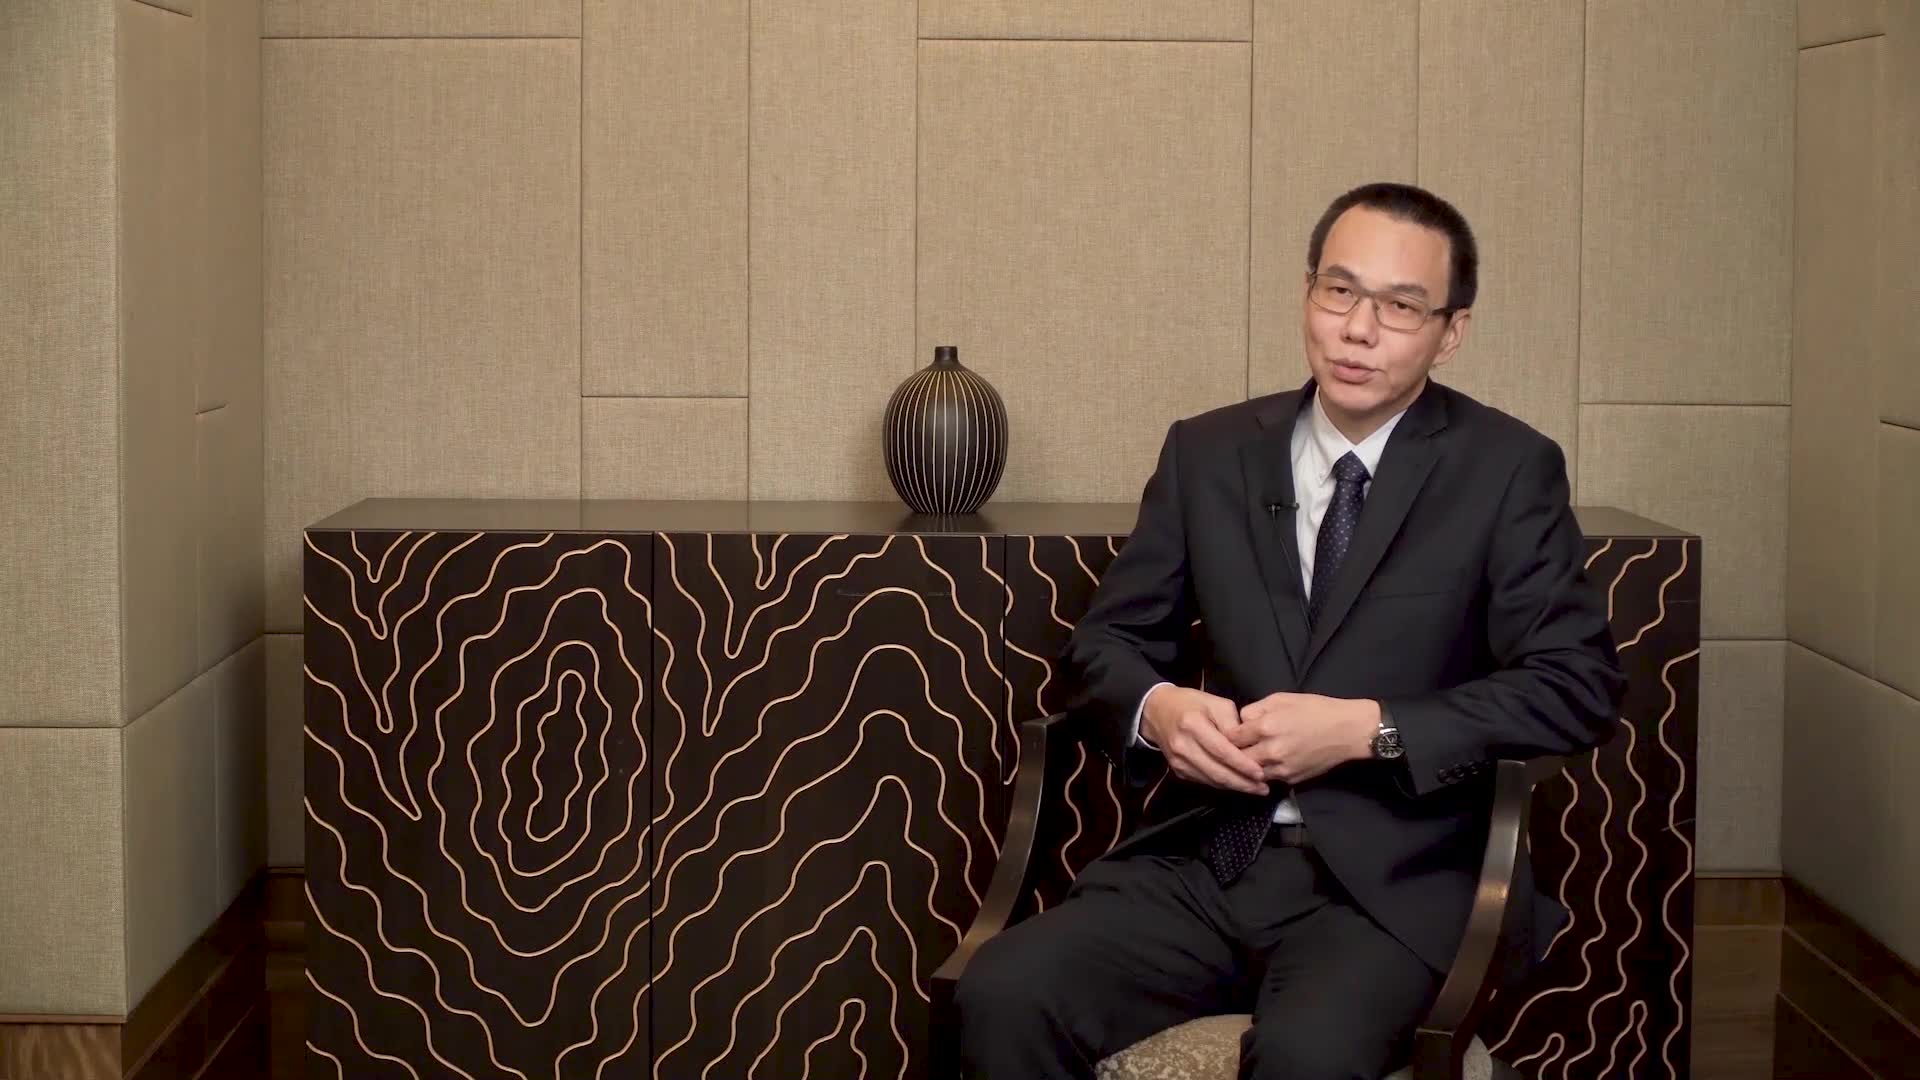 Dato' Dr Liow on the anti-inflammatory effects of PDRN/PN products